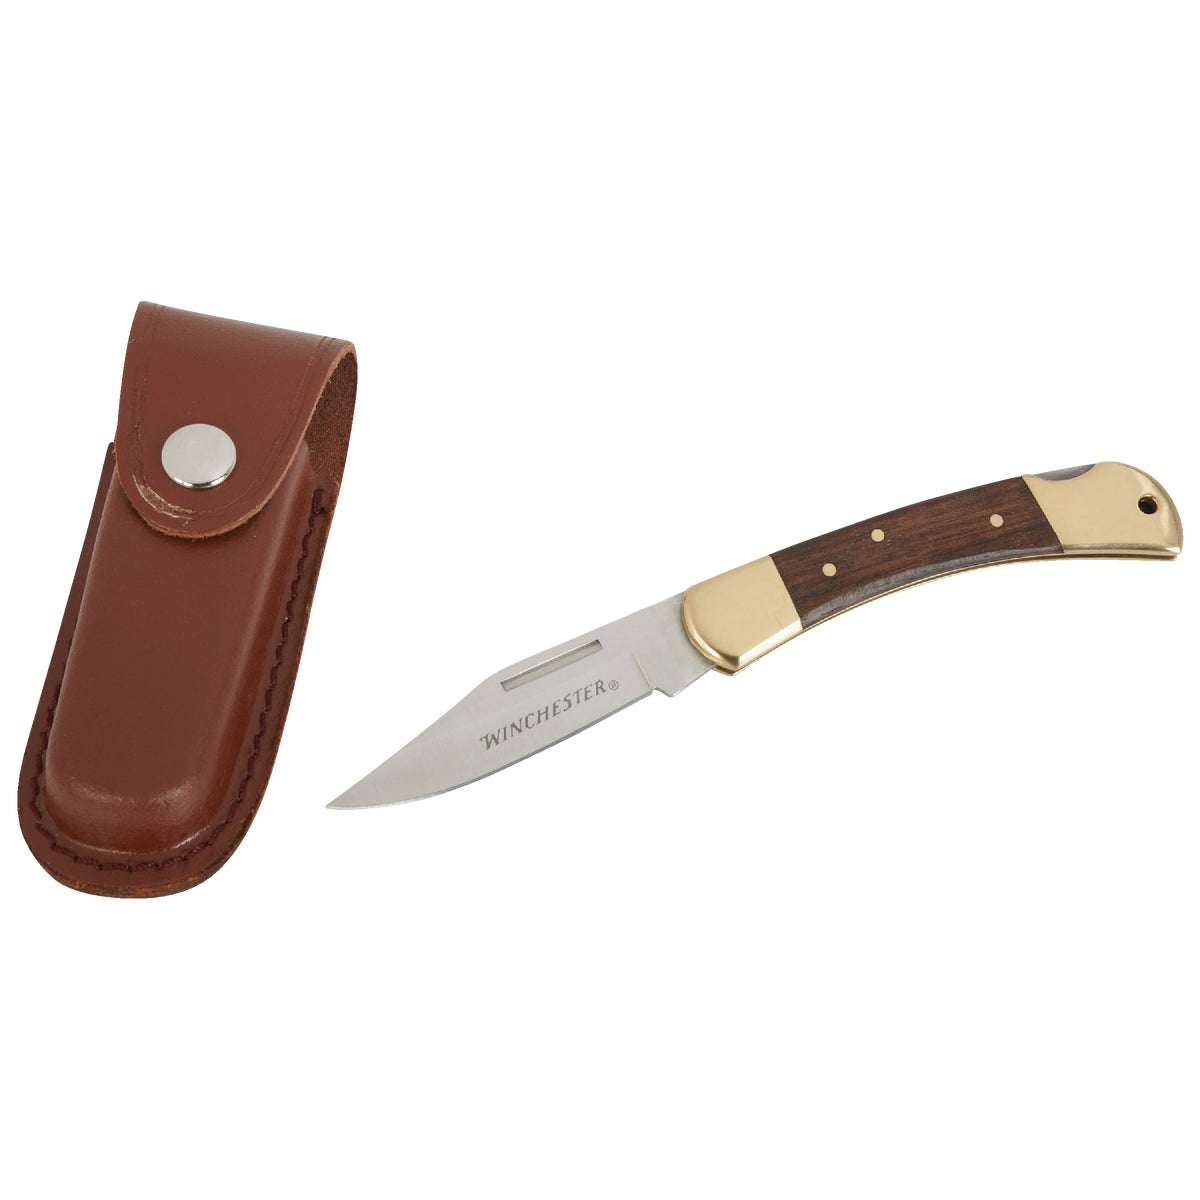 Winchester Brass Folding Knife, 3.25-Inch, Leather Sheath [22-41323]